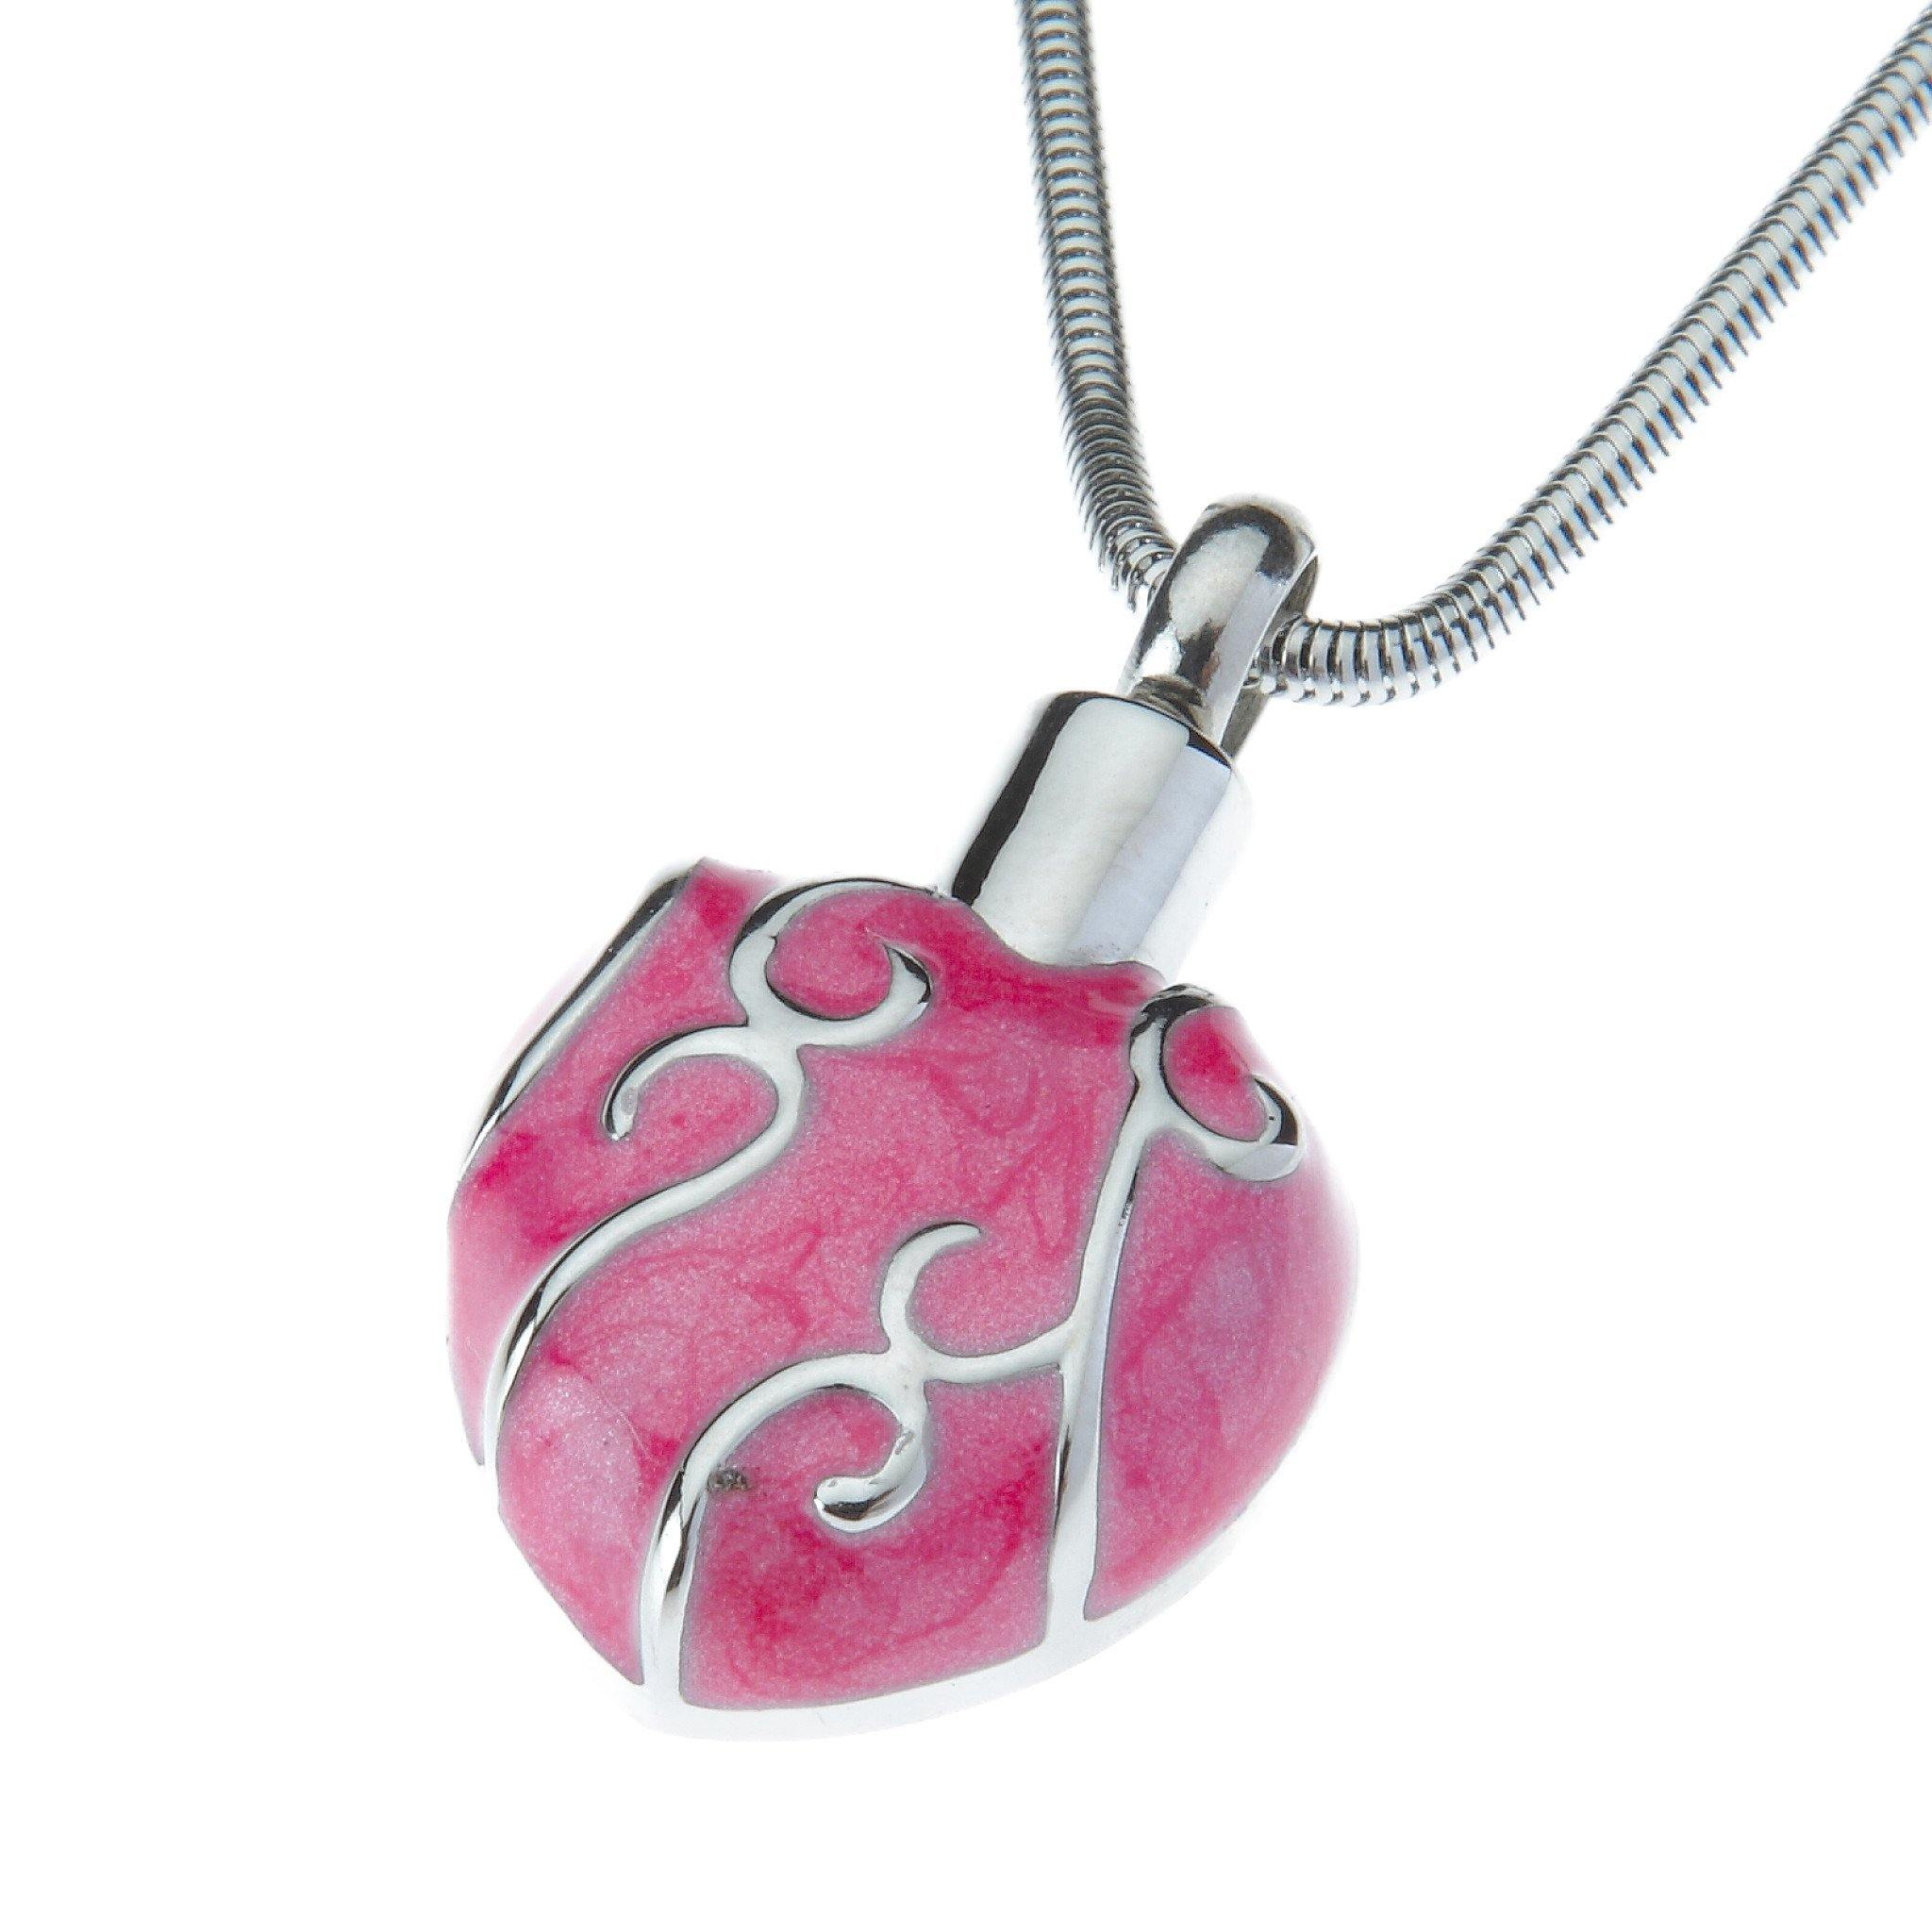 Chelsea Cremation Ashes Pendant Design 32 - Urns UK